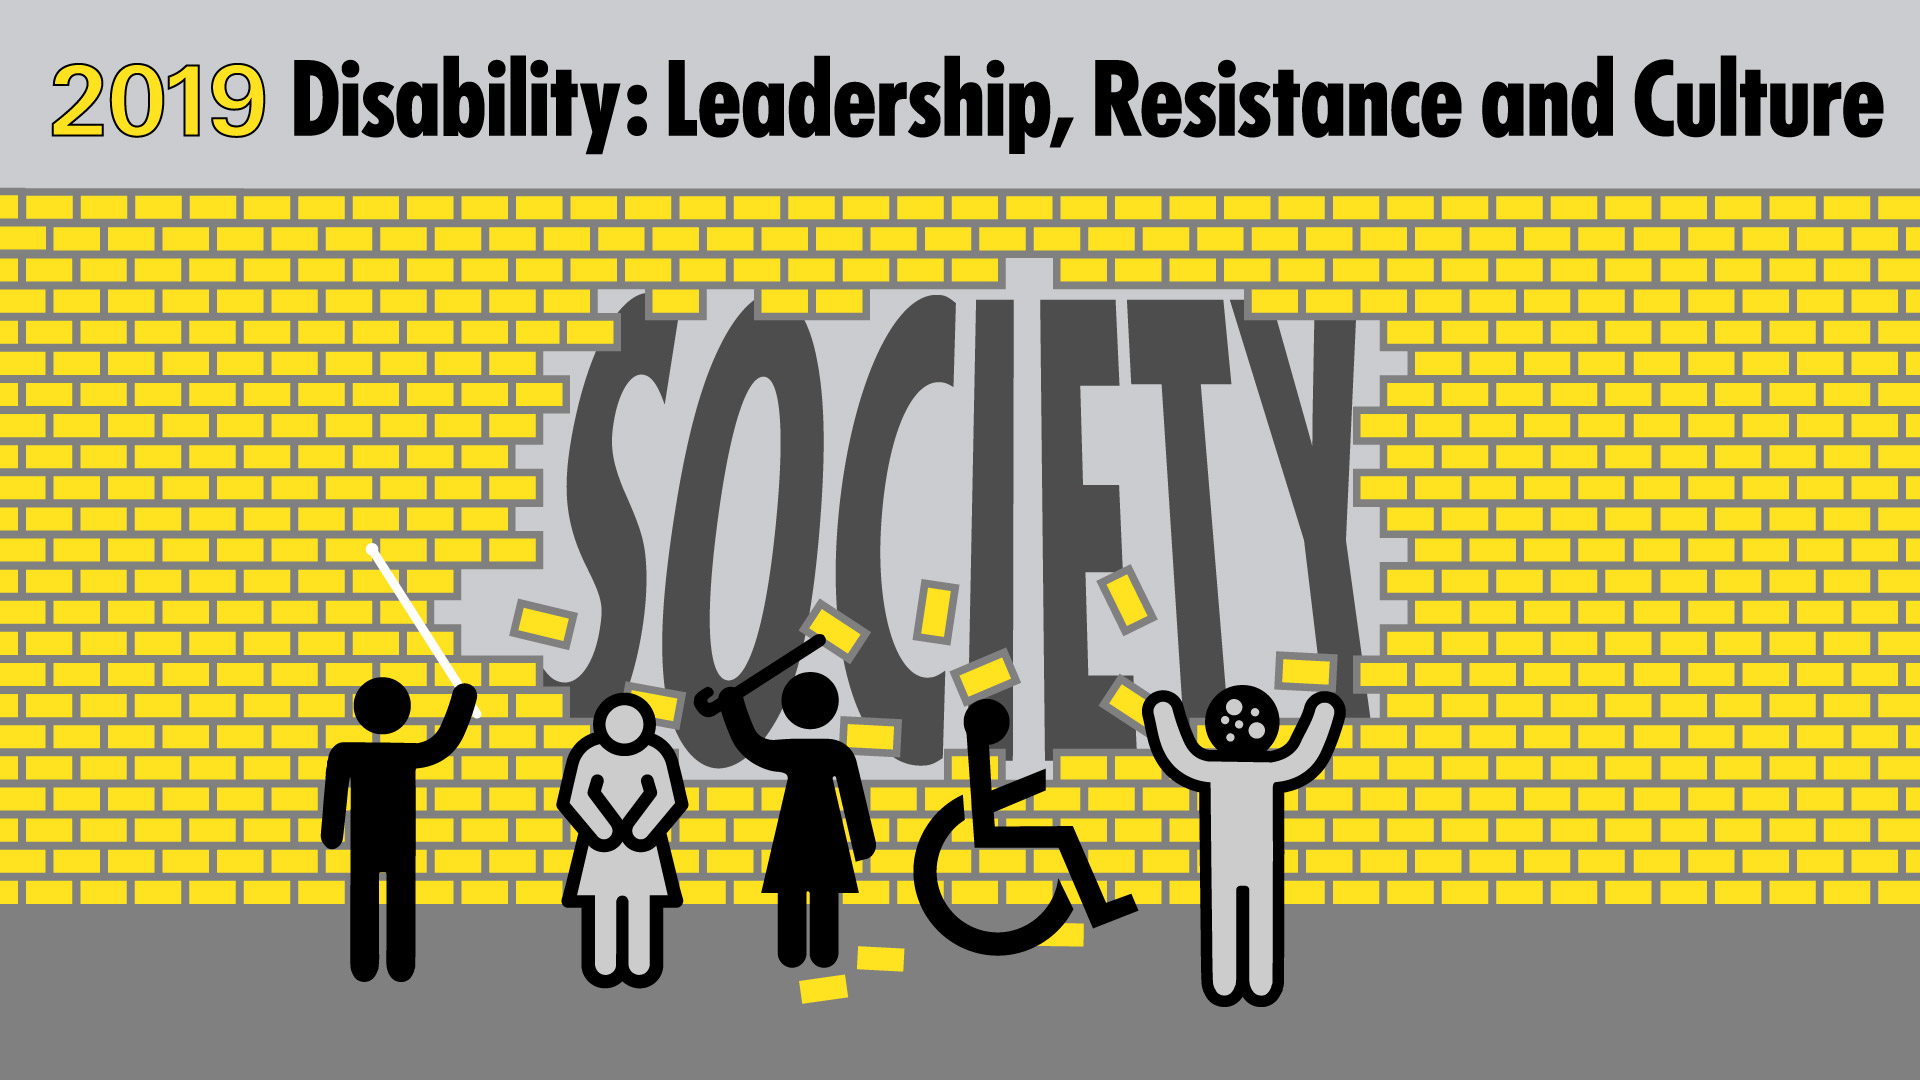 Illustration showing a group of symbols representing disabled people knocking down the wall separating them from society